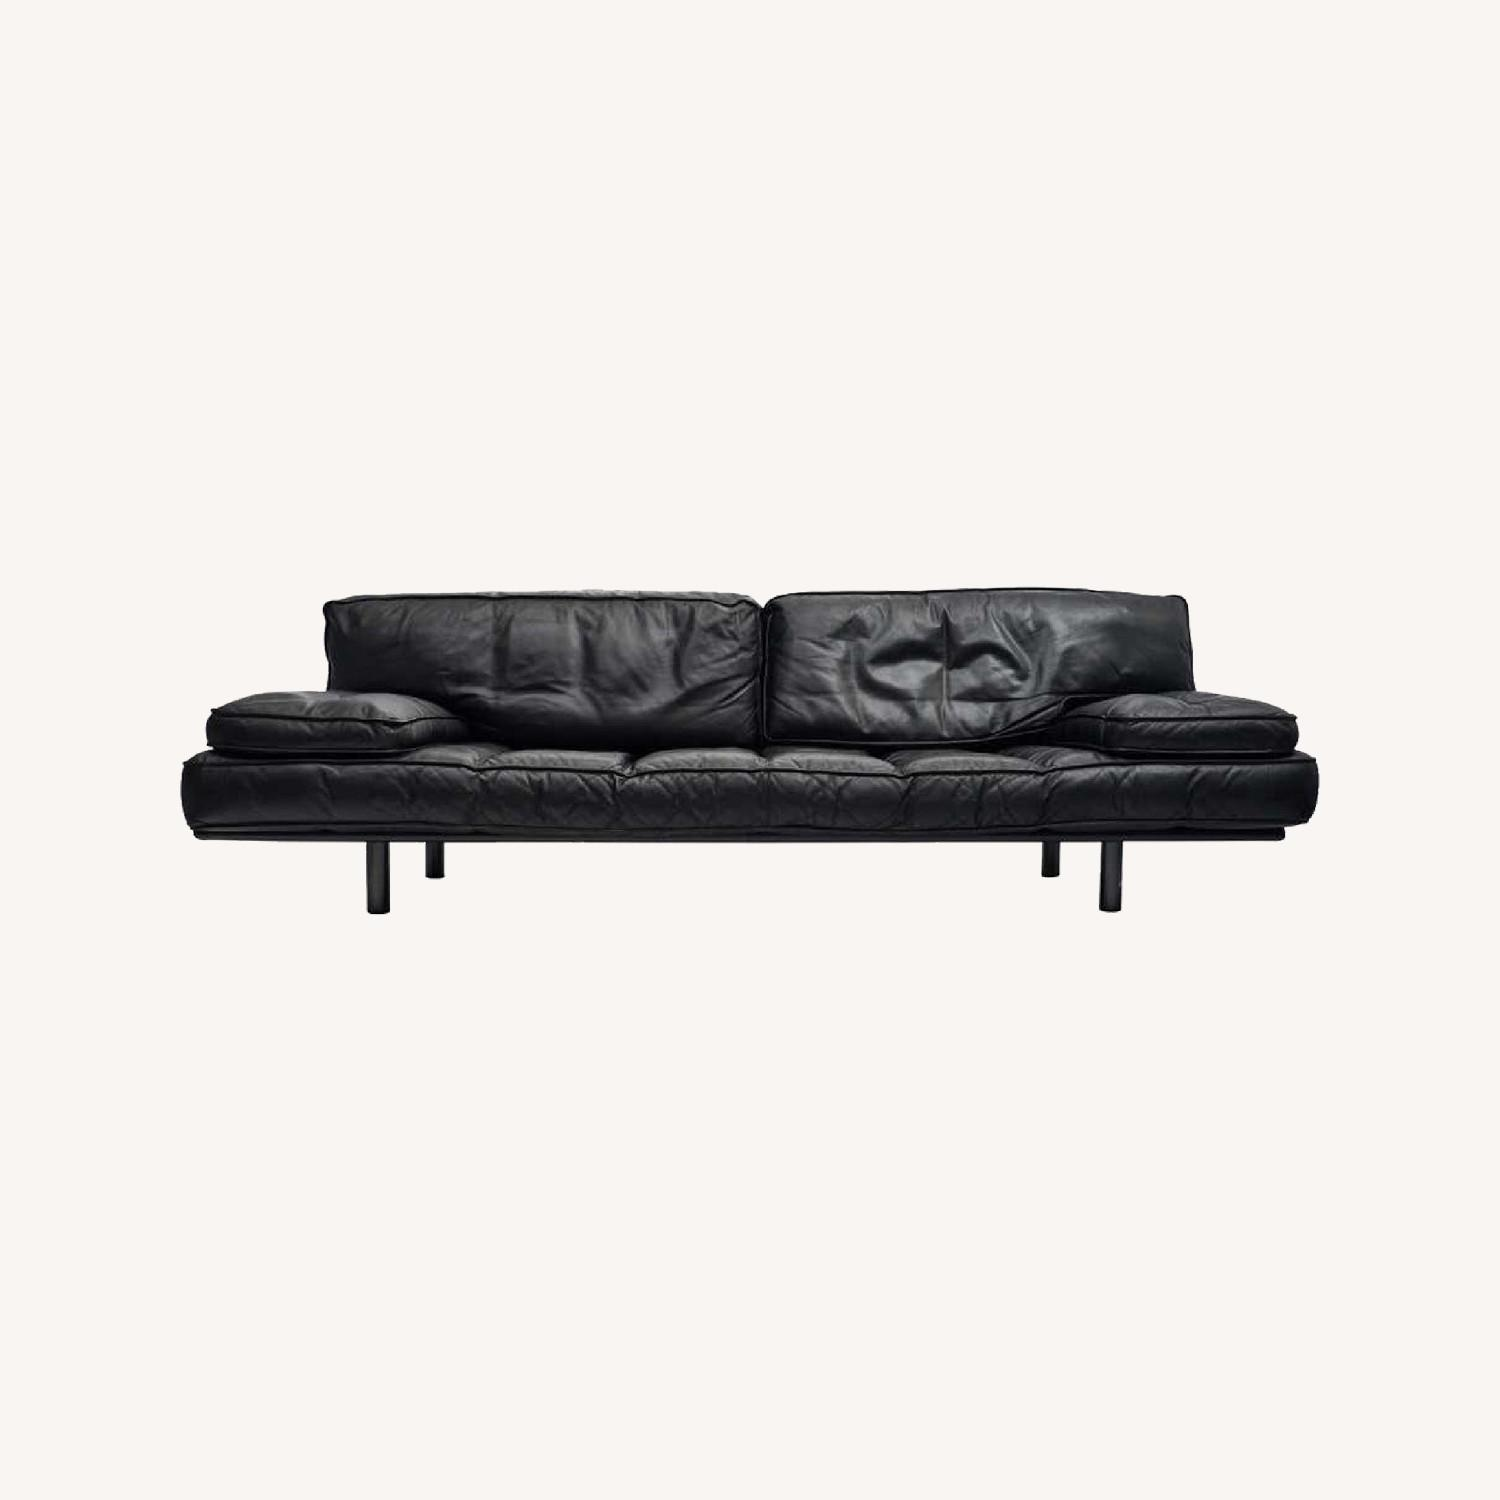 Zanotta Black Leather Sofa - image-0